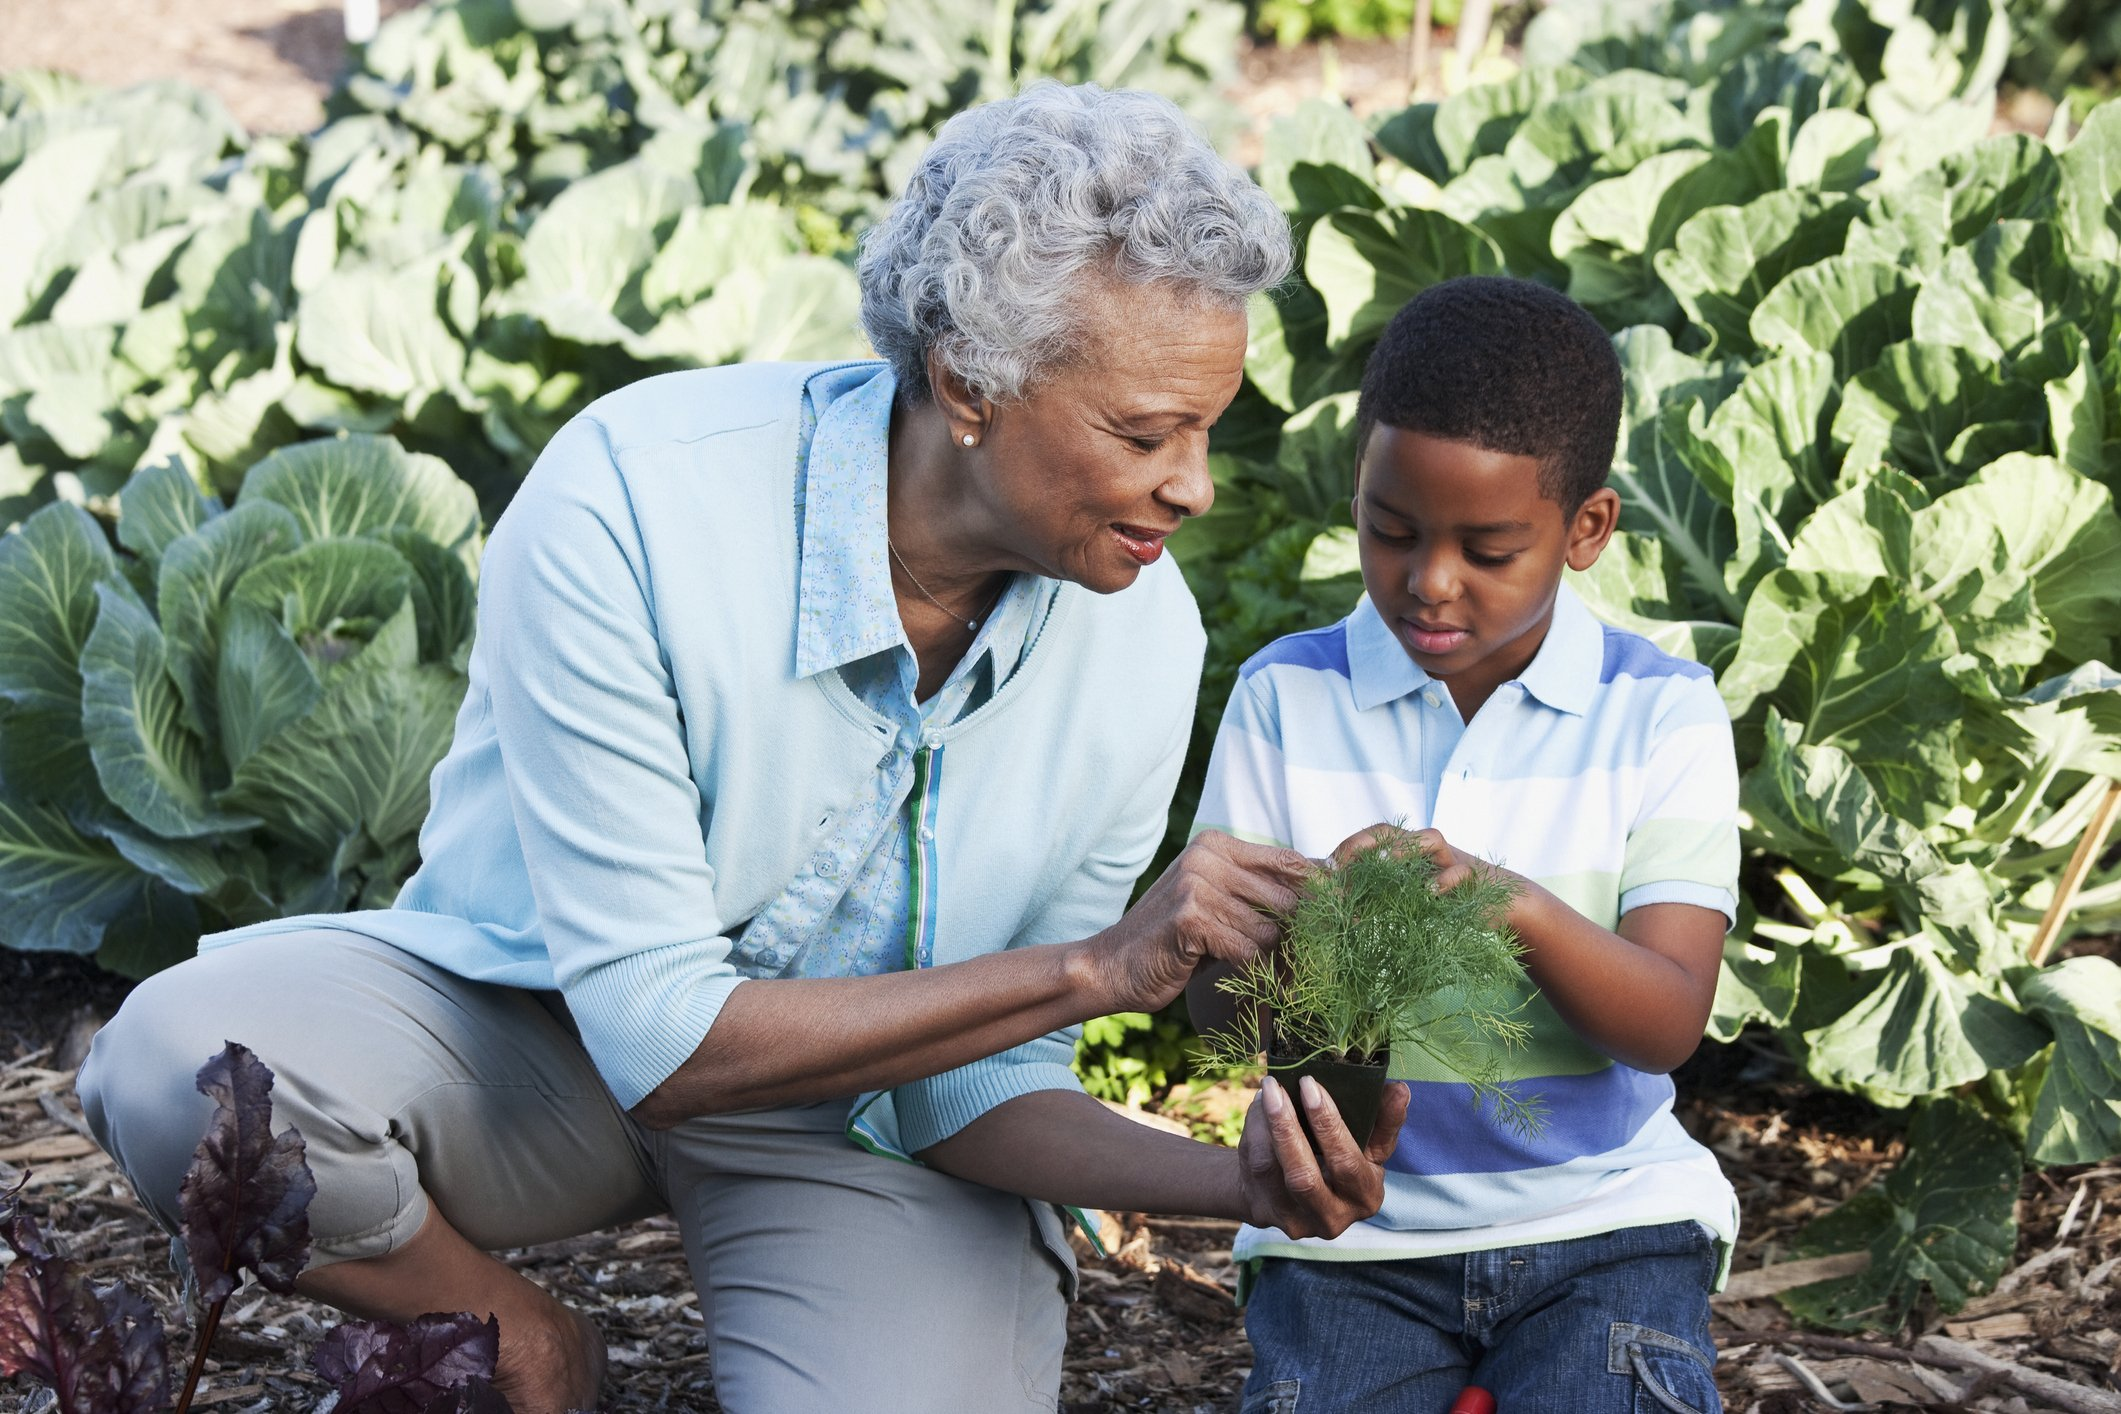 African grandmother gardening with grandson | Photo: Getty images